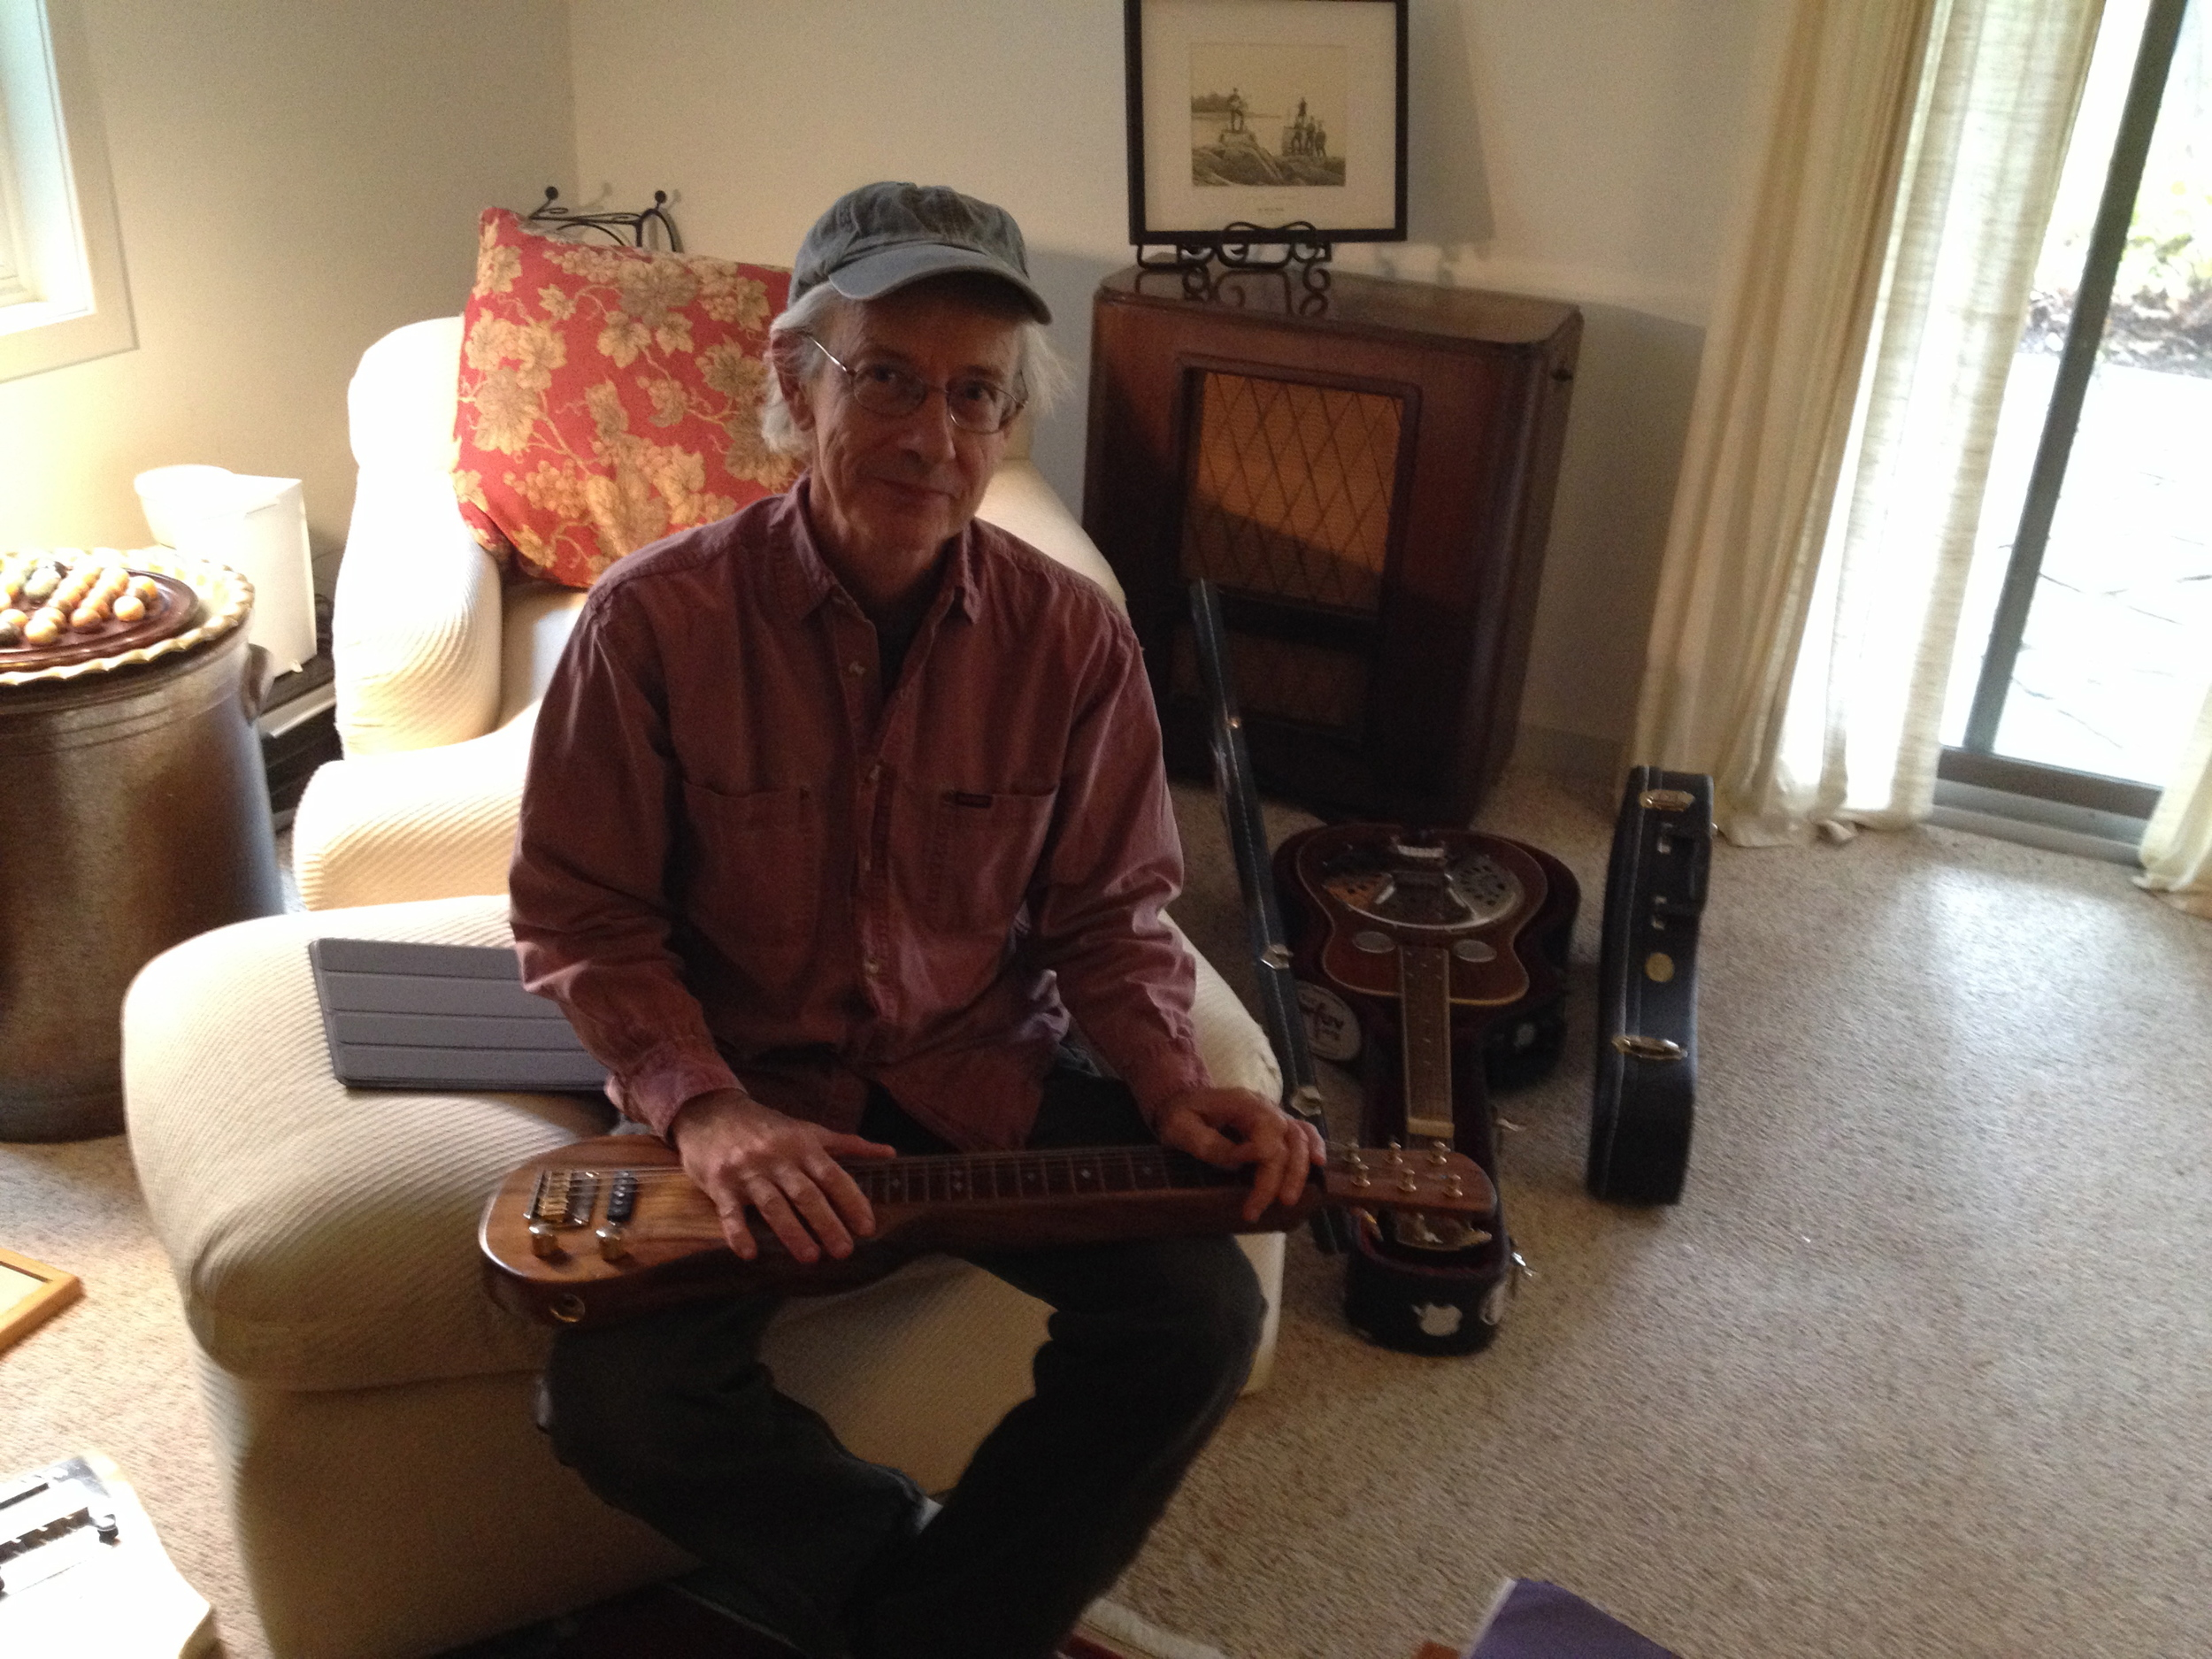 Dan Bonis and his lap steel guitar